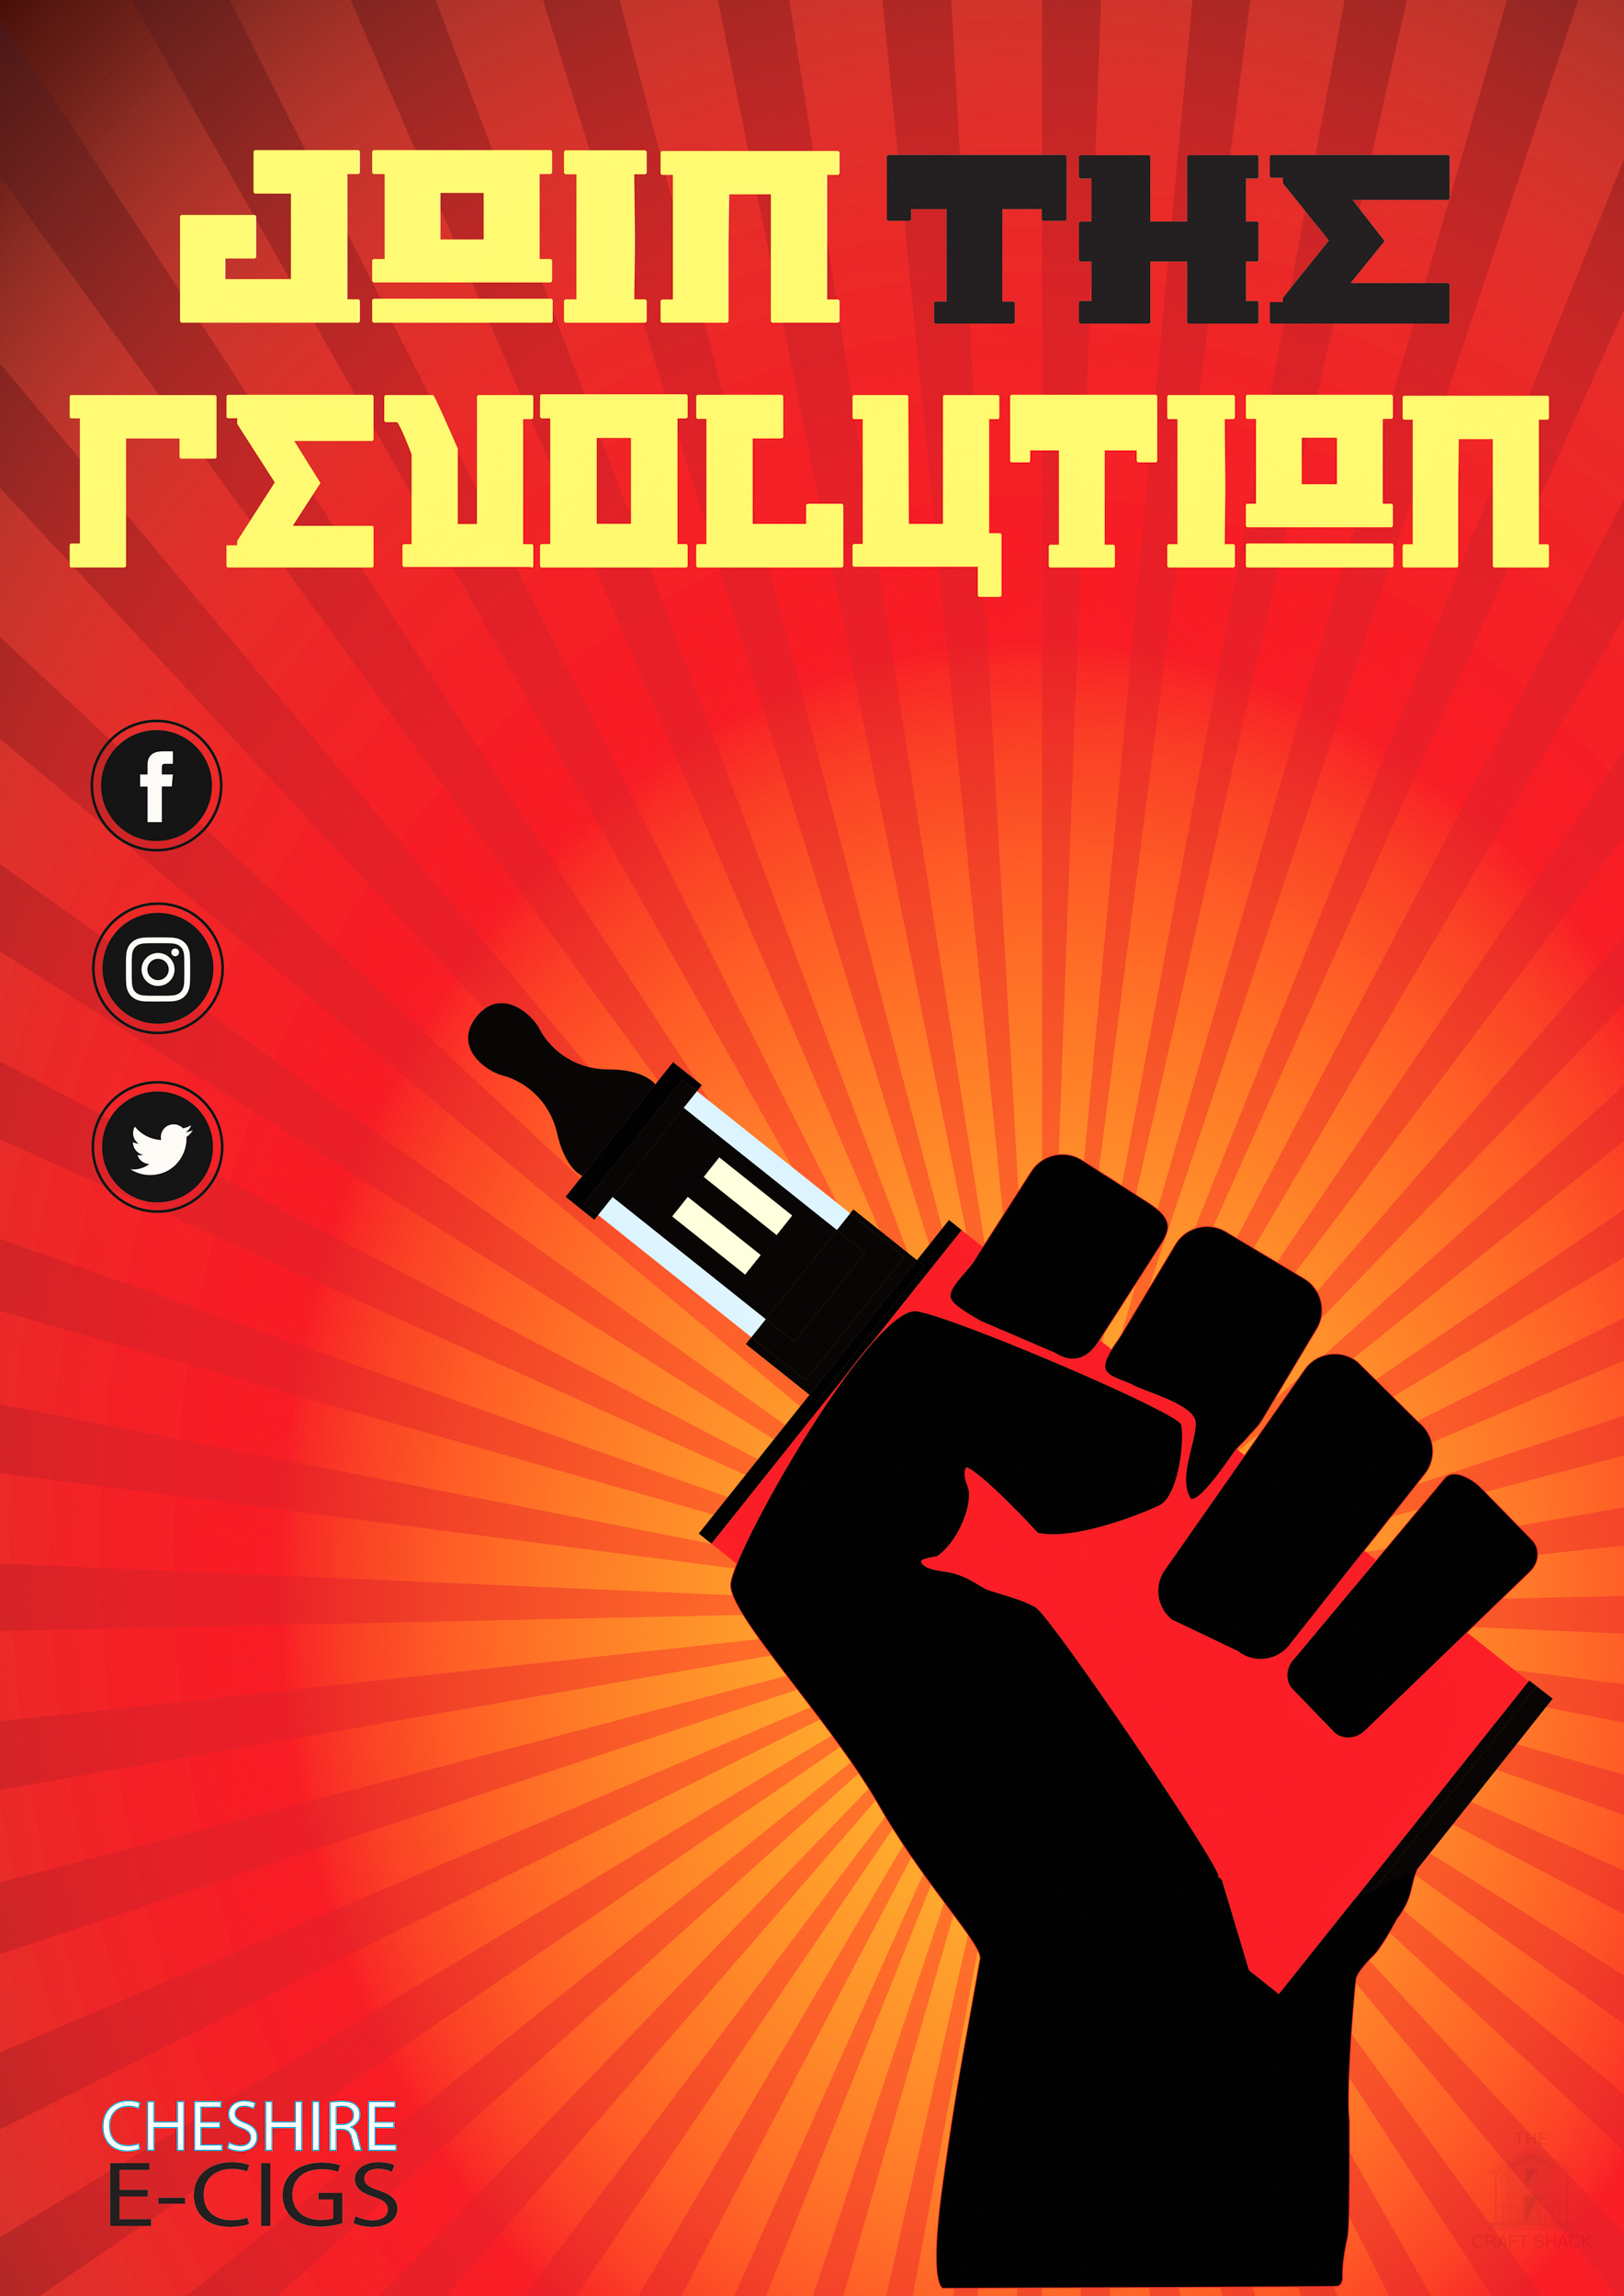 The final image of a revolutionary themed promotion for vaping.